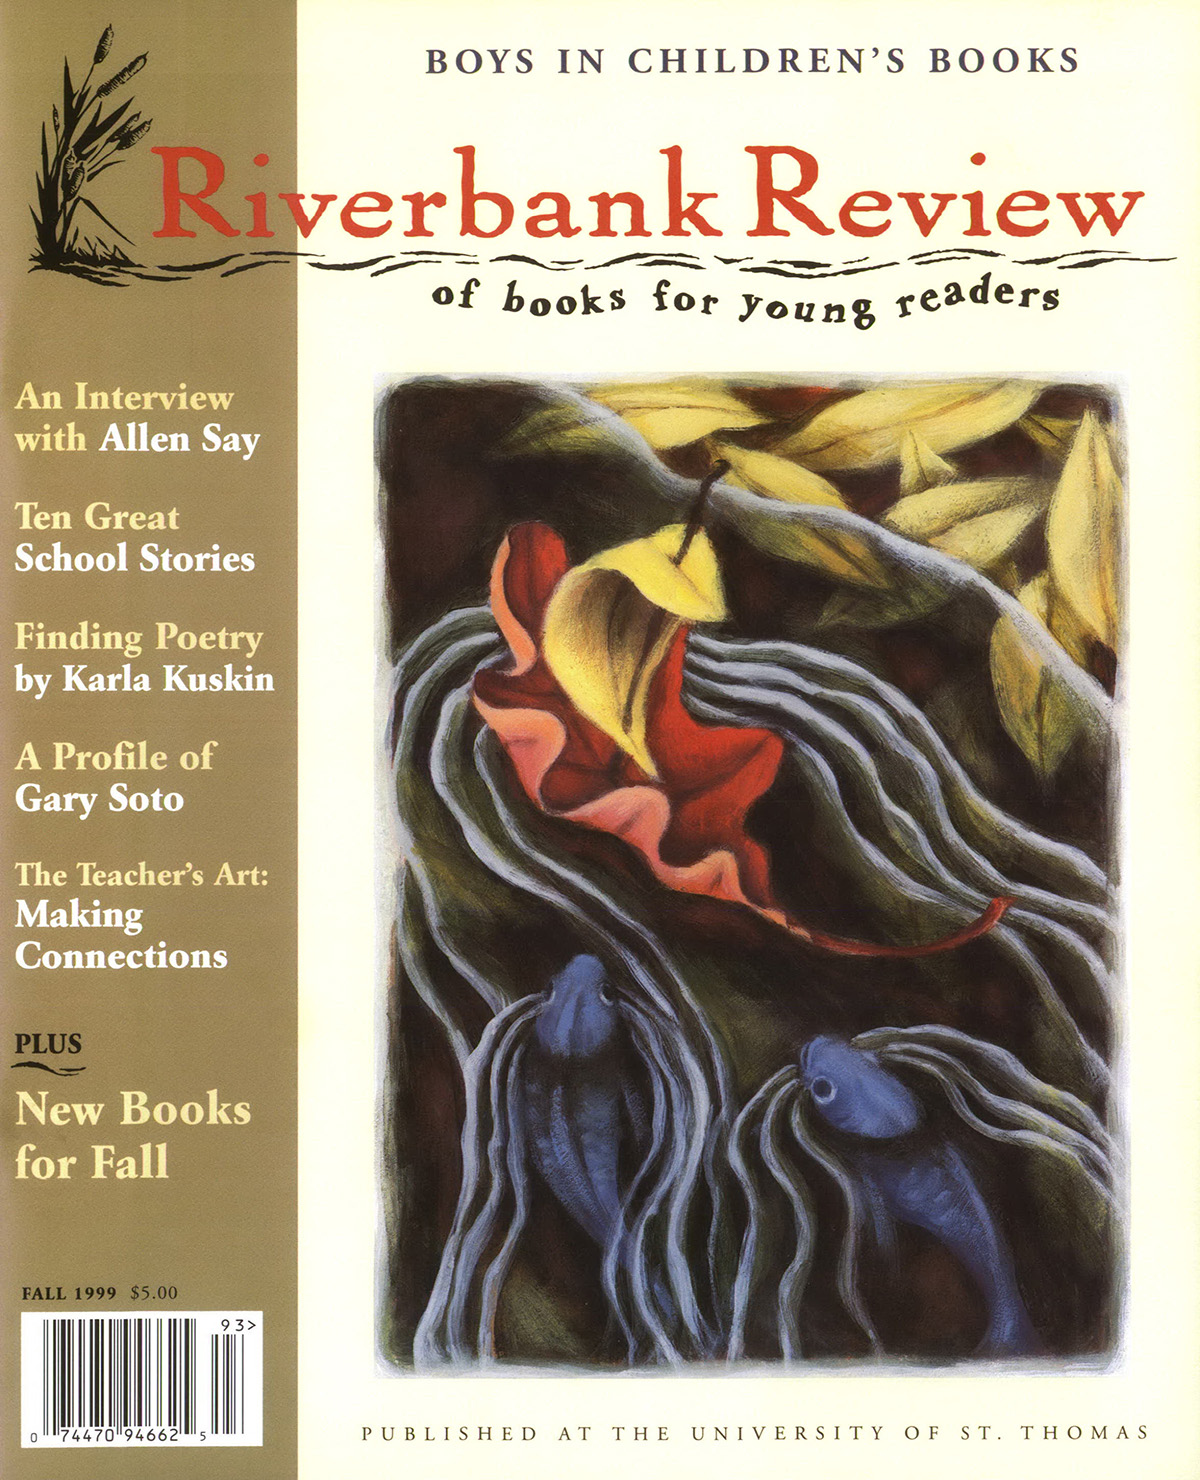 Fall 1999: Lauren Stringer cover